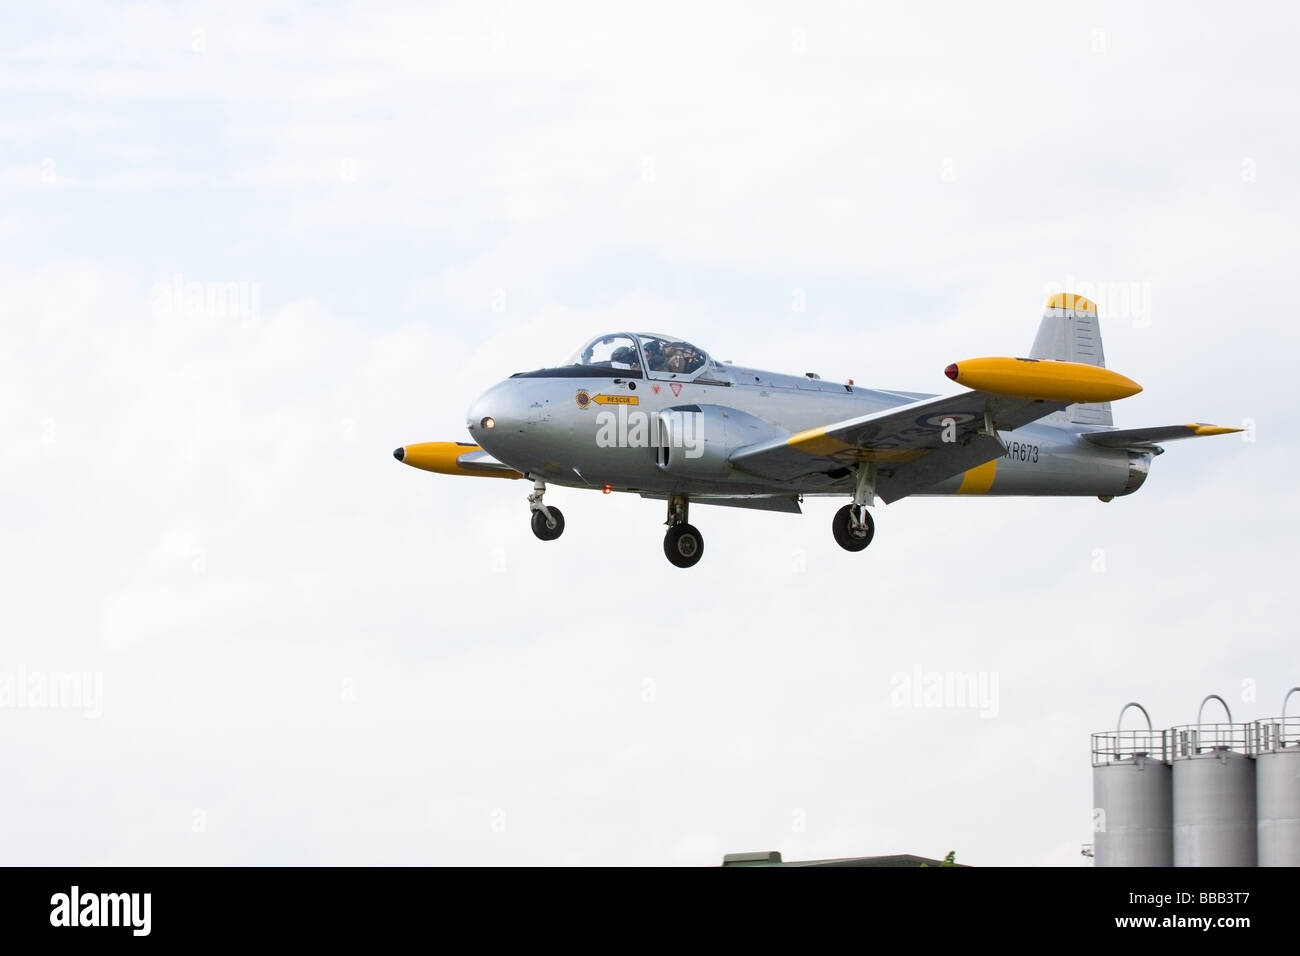 British Aerospace (Percival) P84 Jet Provost T4 XR763 G-BXLO in flight on approach to land at Sandtoft Airfield - Stock Image